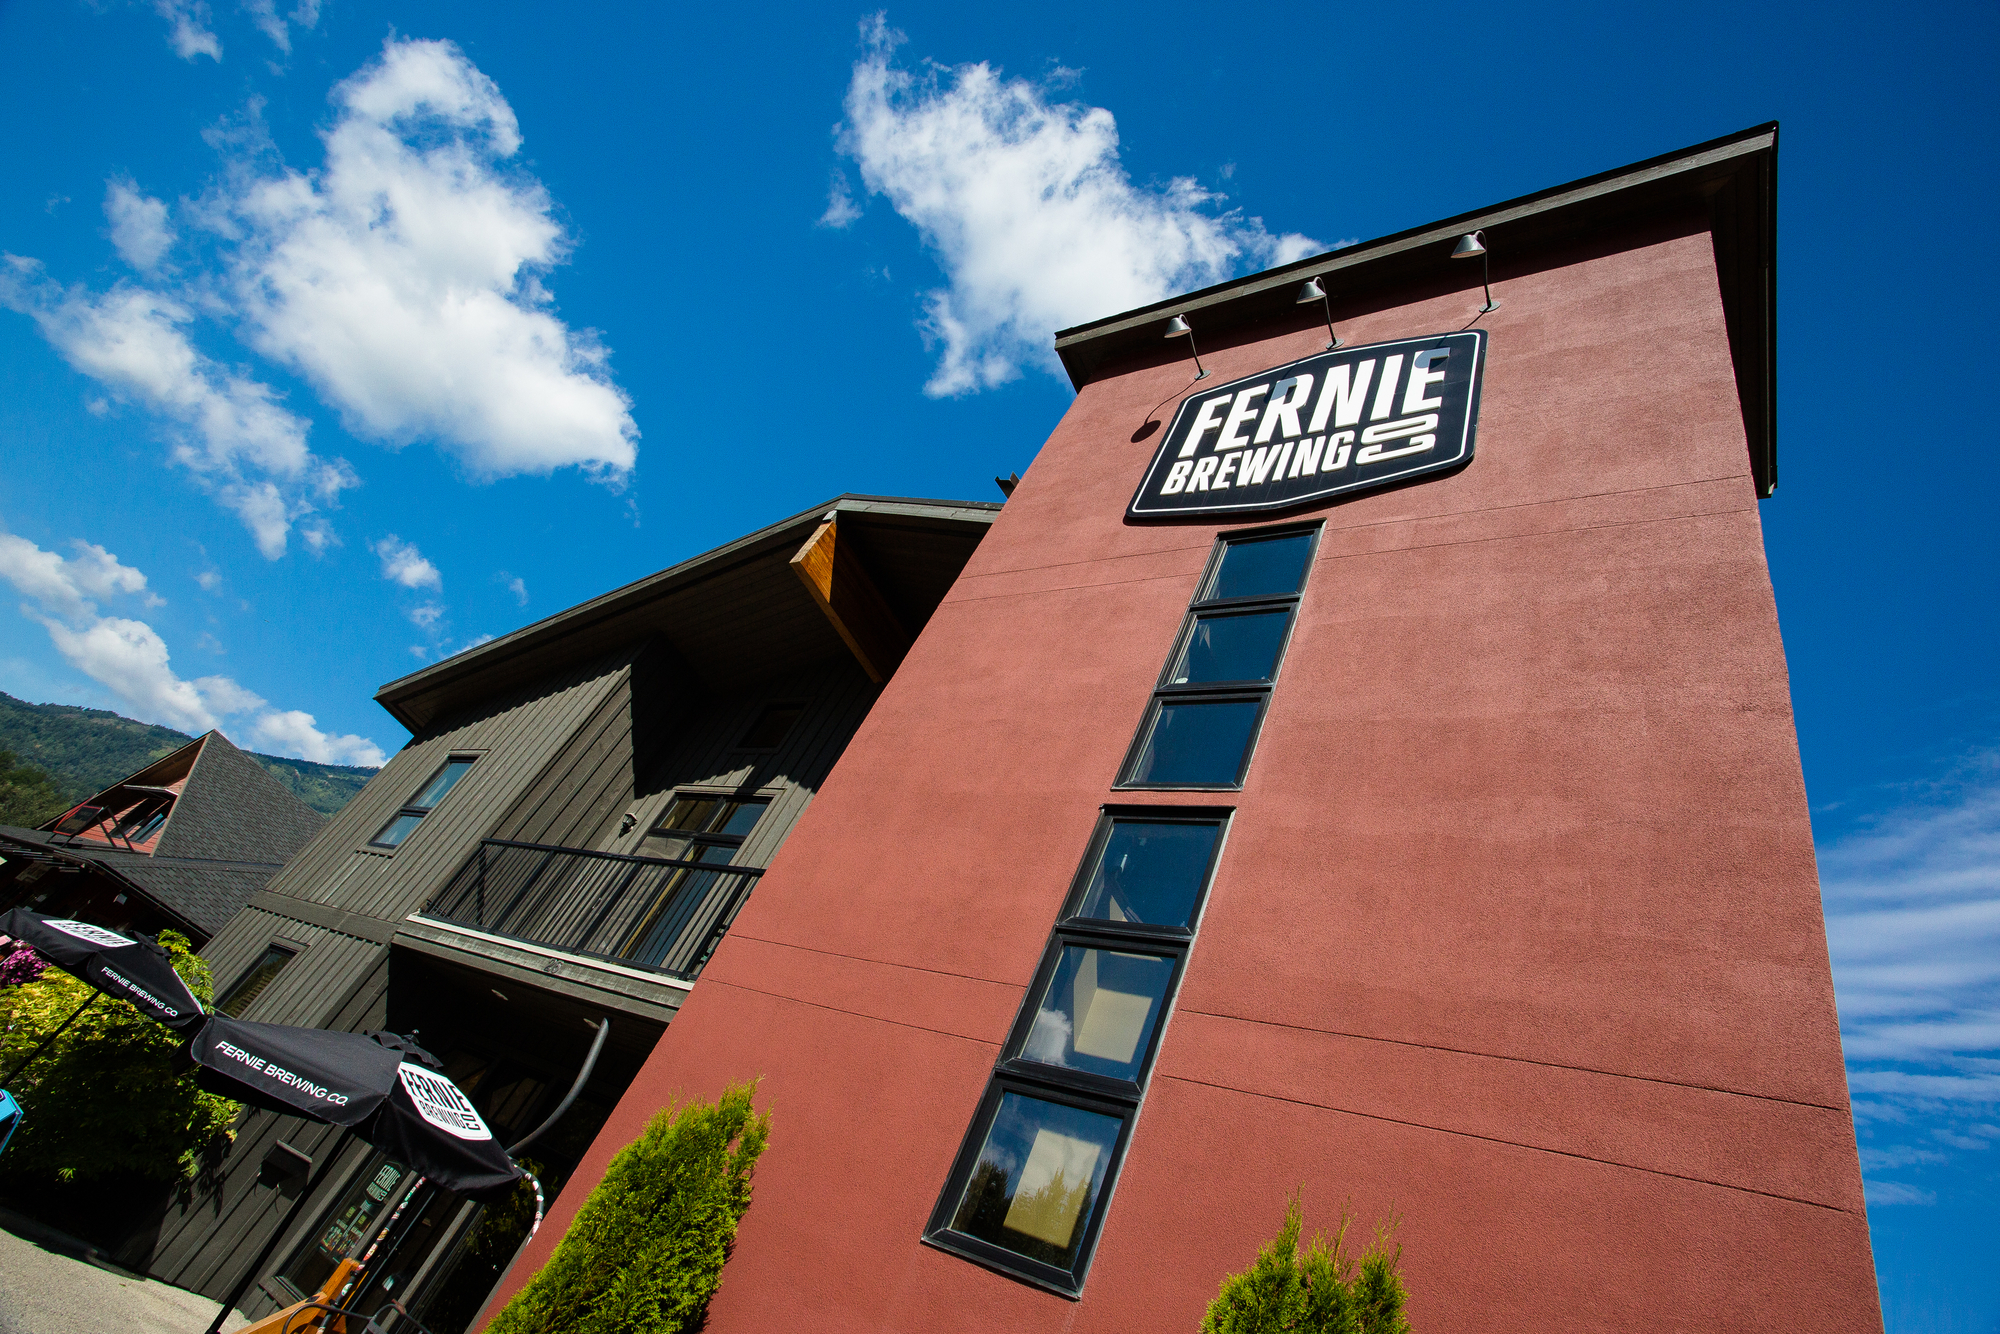 (1/2) Strategically placed just outside town on the main, the Fernie brewing company welcomes anglers returning from a day on the Elk upstream of town.